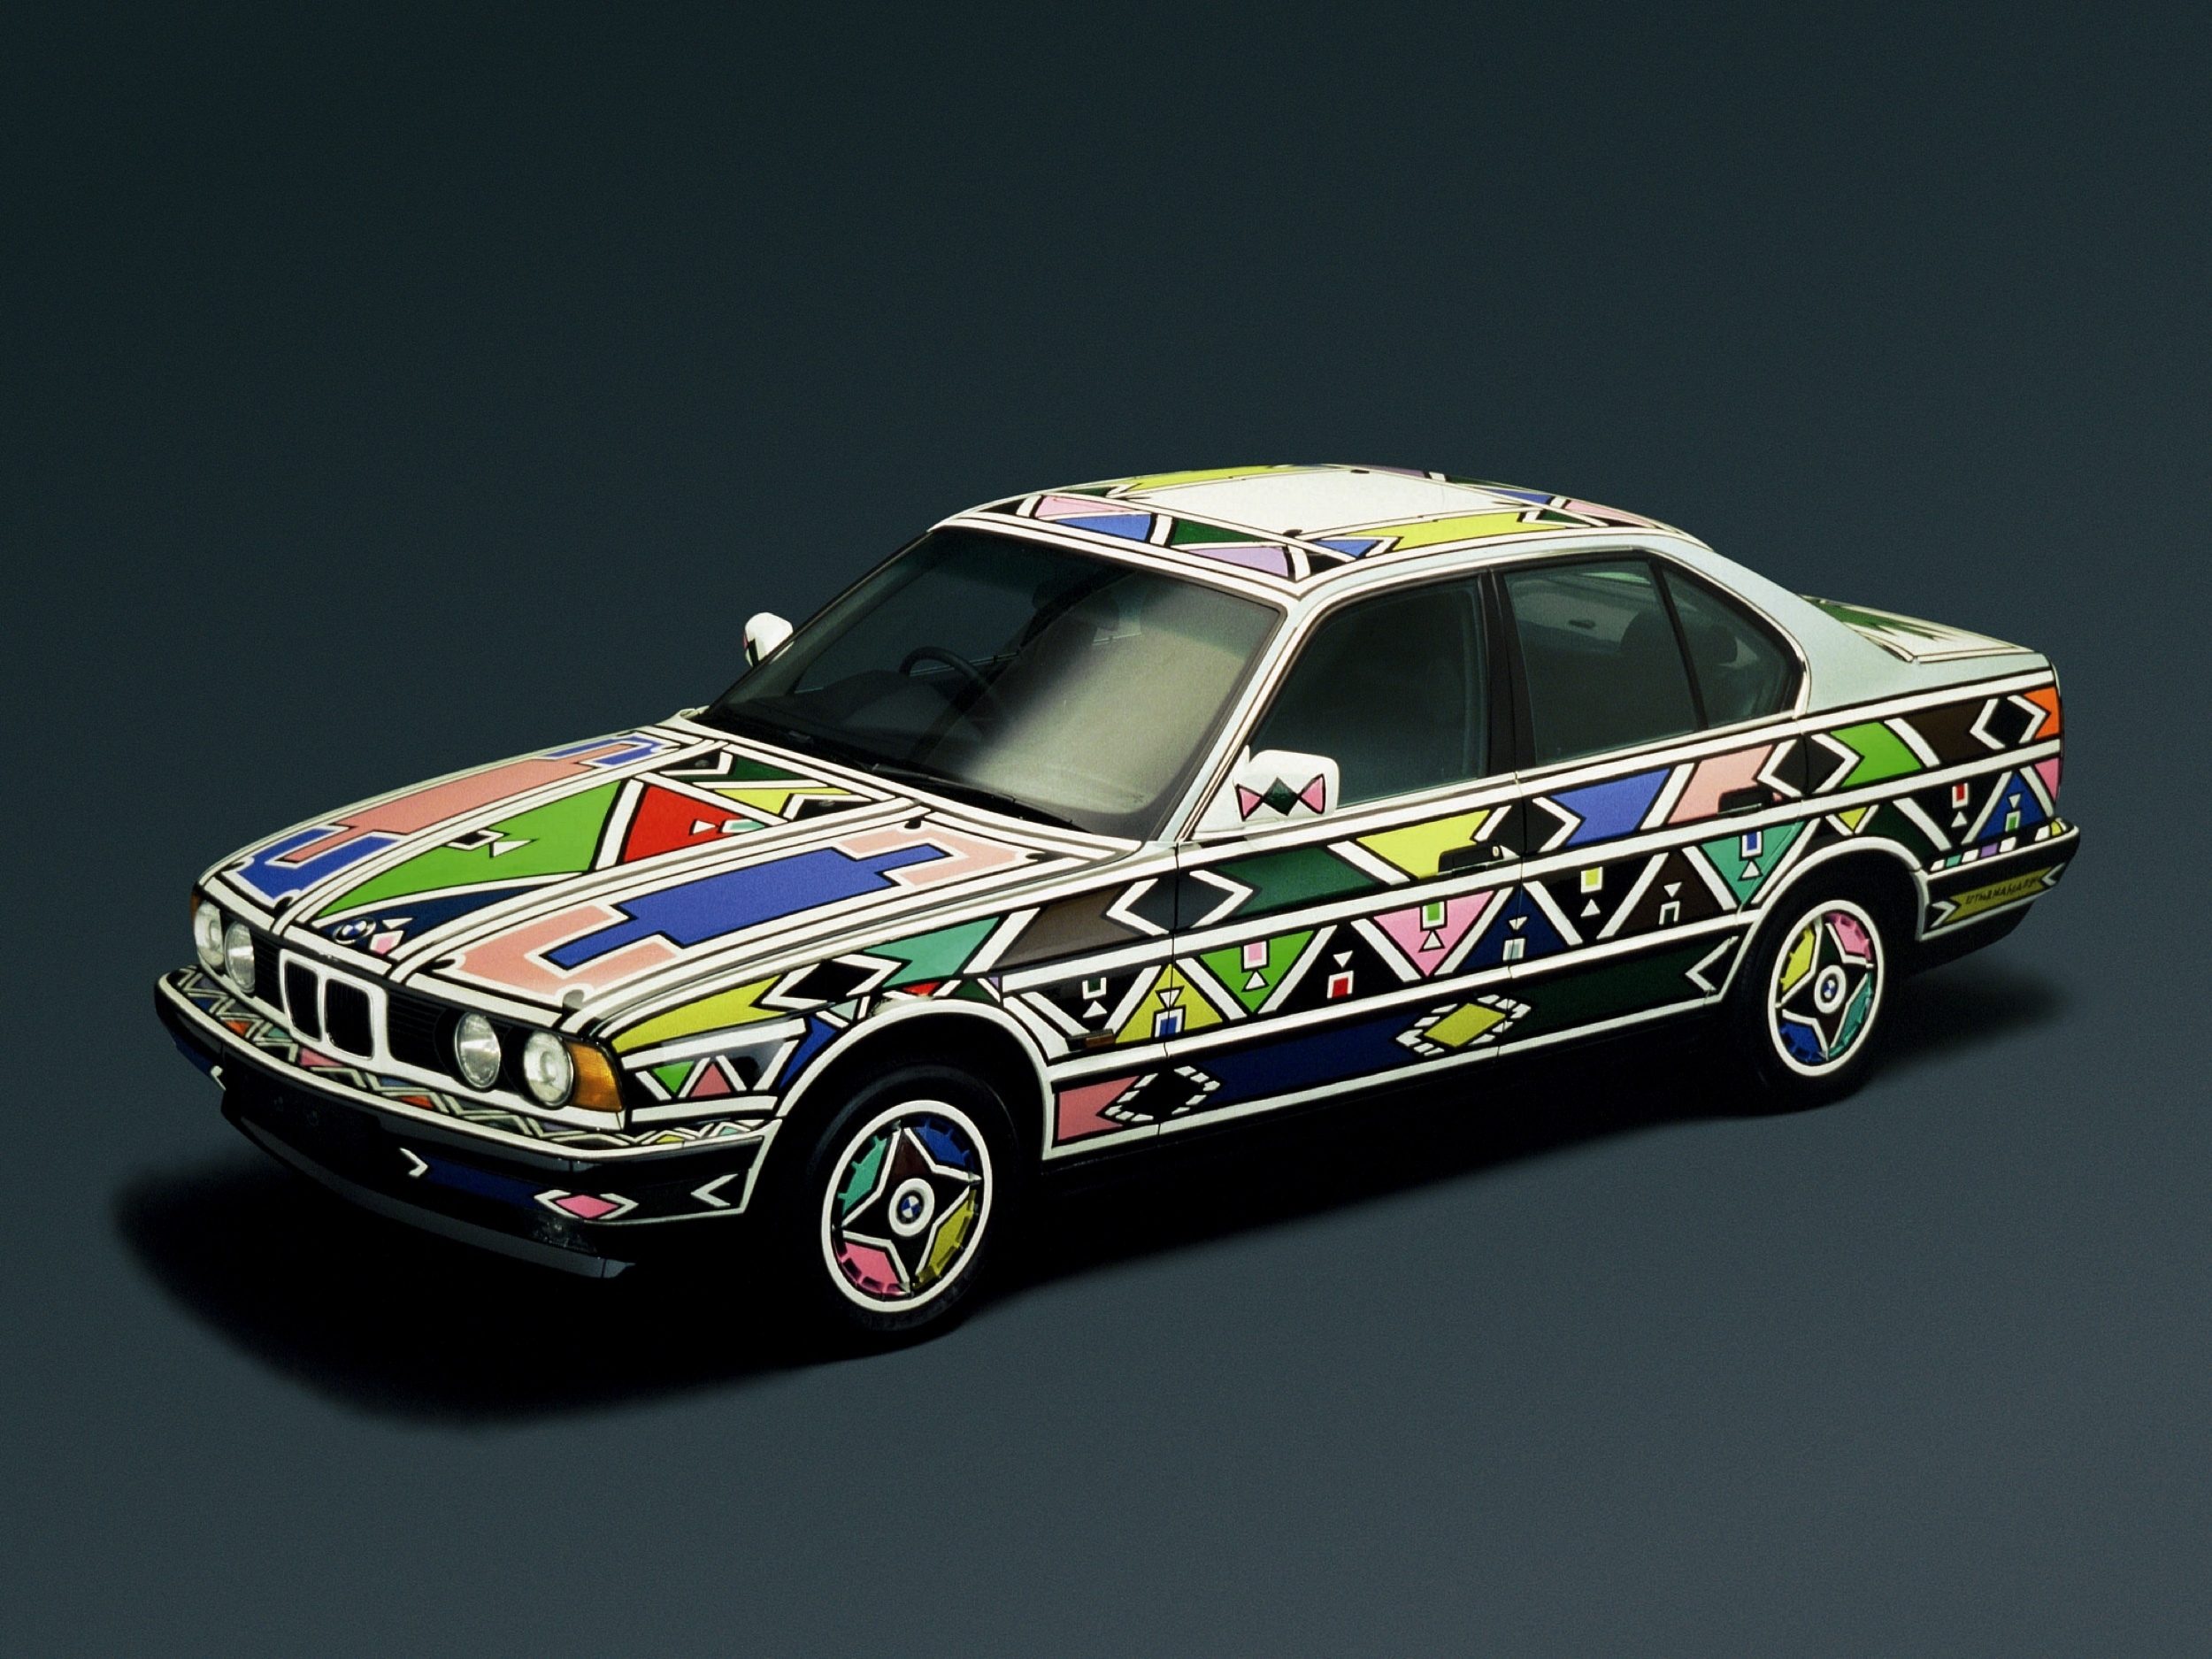 BMW 525 art car Esther Mahlangu -14- Autovisie.nl